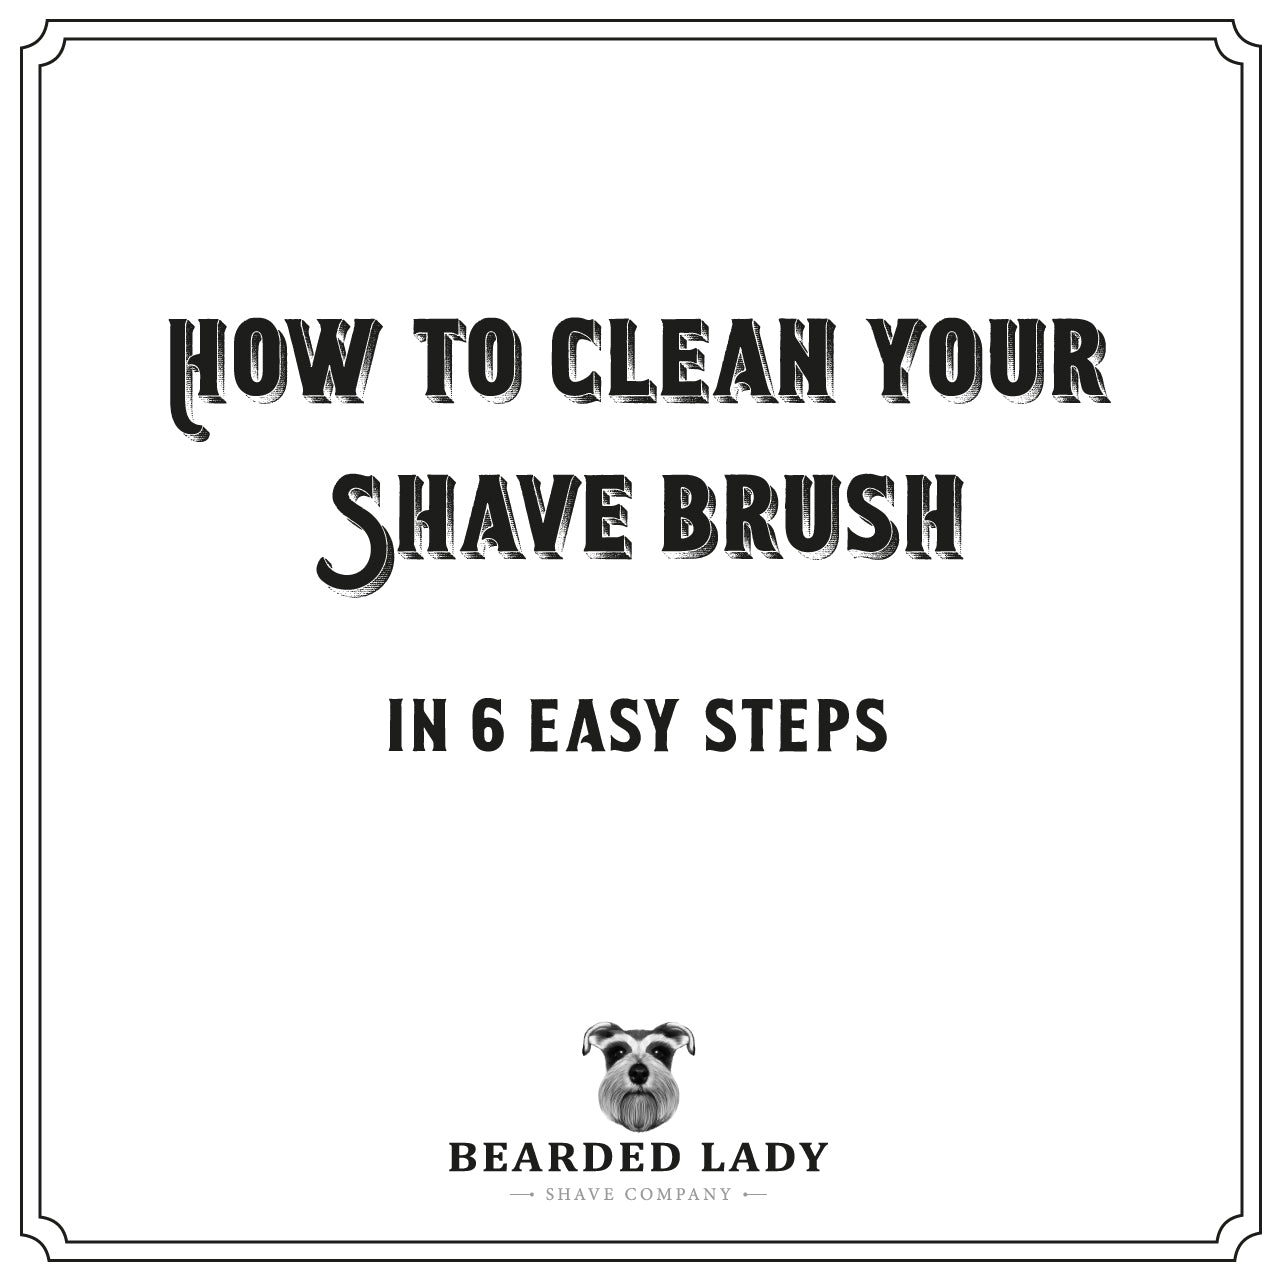 How to Clean Your Shave Brush in 6 Easy Steps